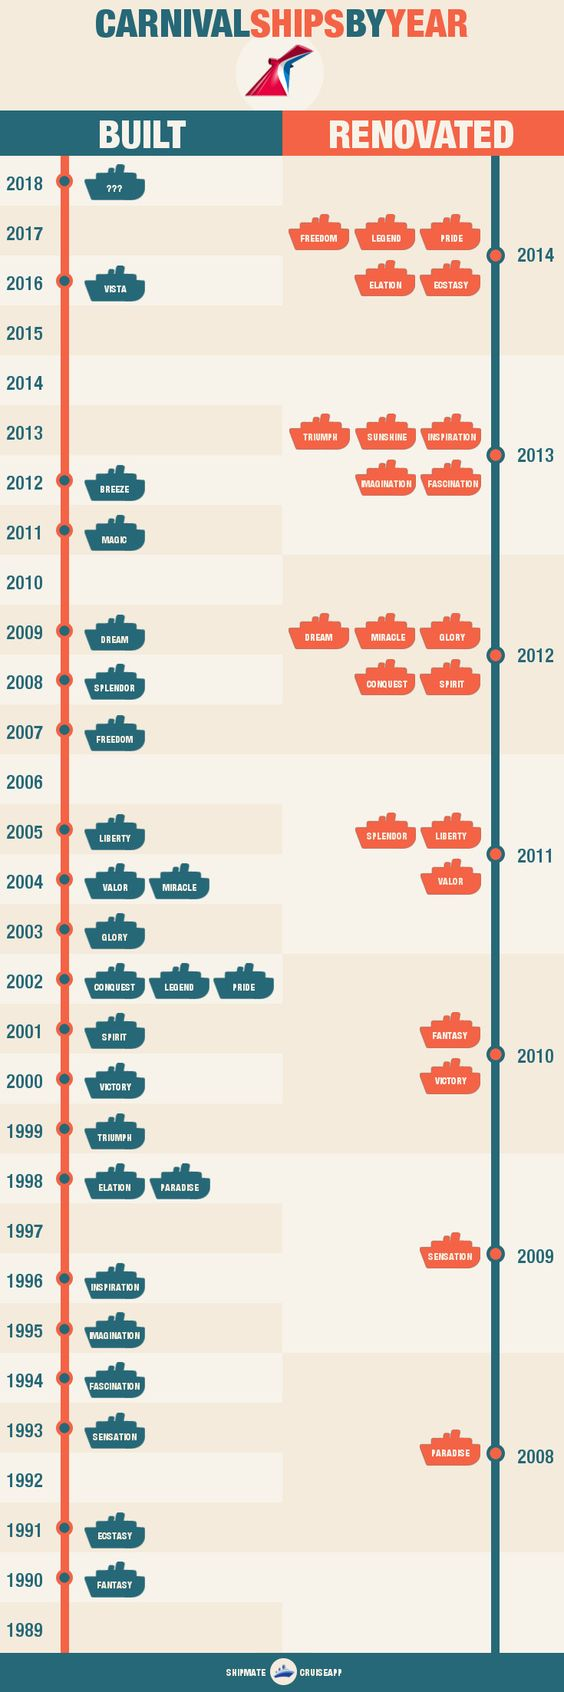 Carnival Ships By Age and Renovation - Cruise Radio